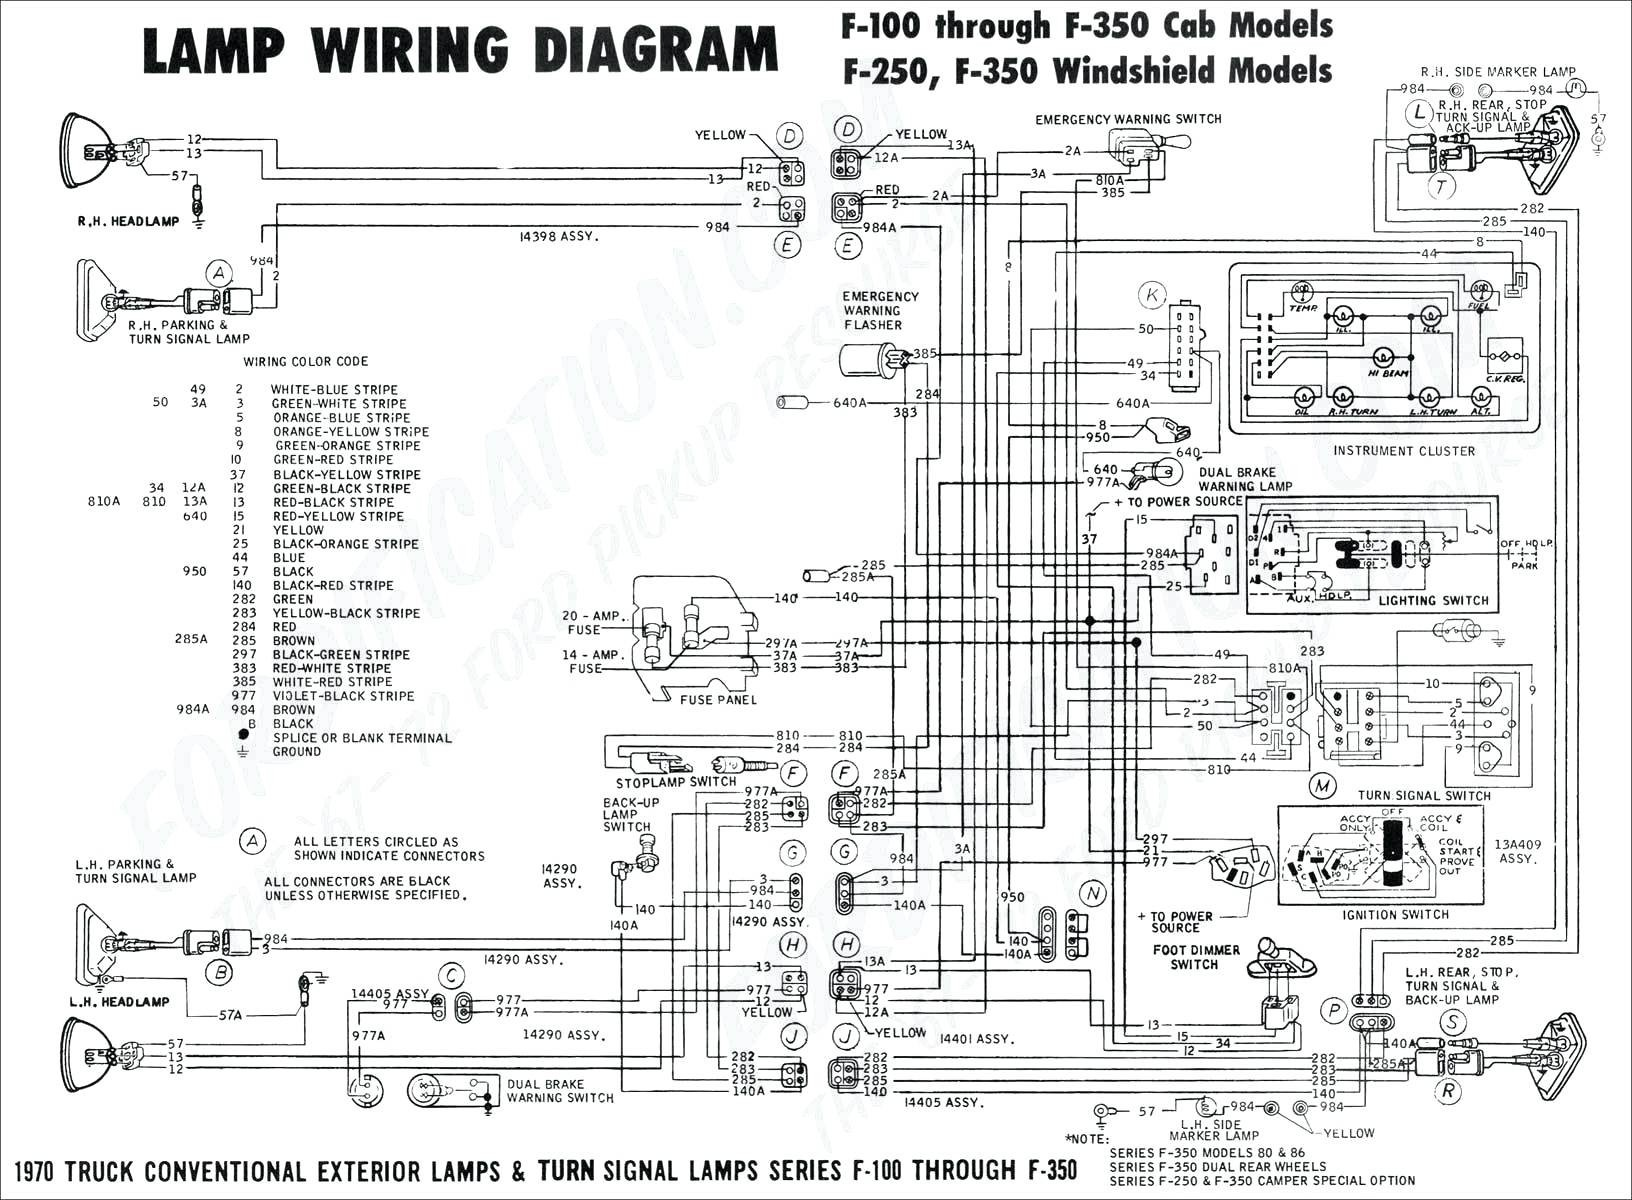 daewoo matiz wiring diagram home theatre system pdf data site